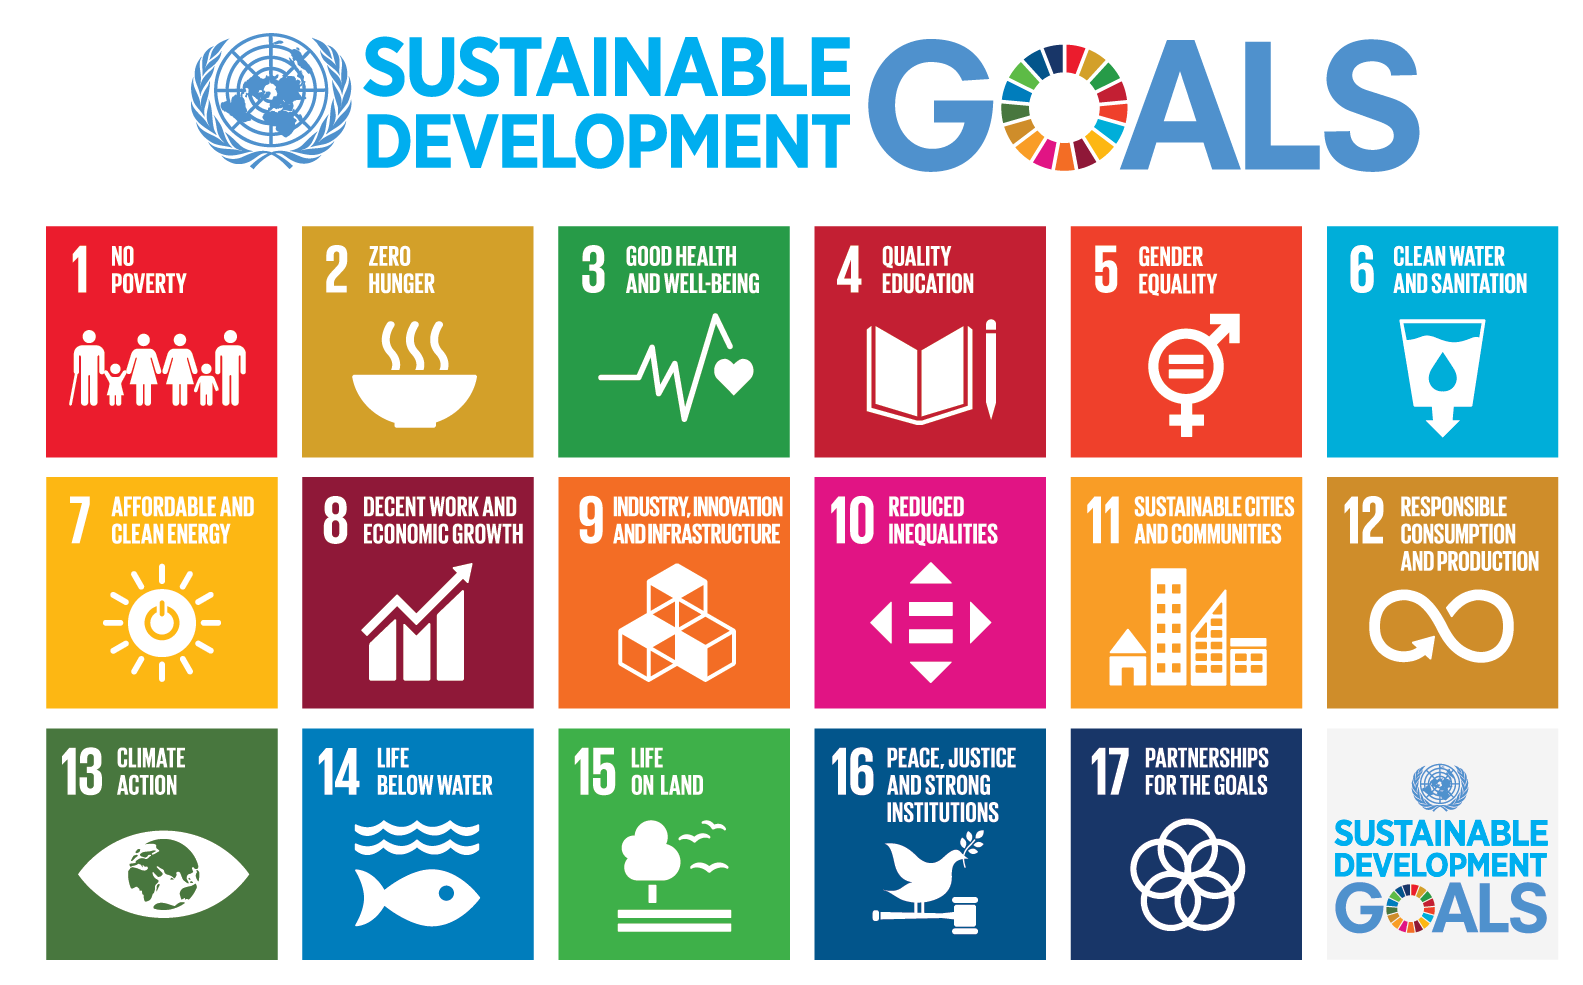 Public Photos / Files - E_2018_SDG_Poster_with_UN_emblem